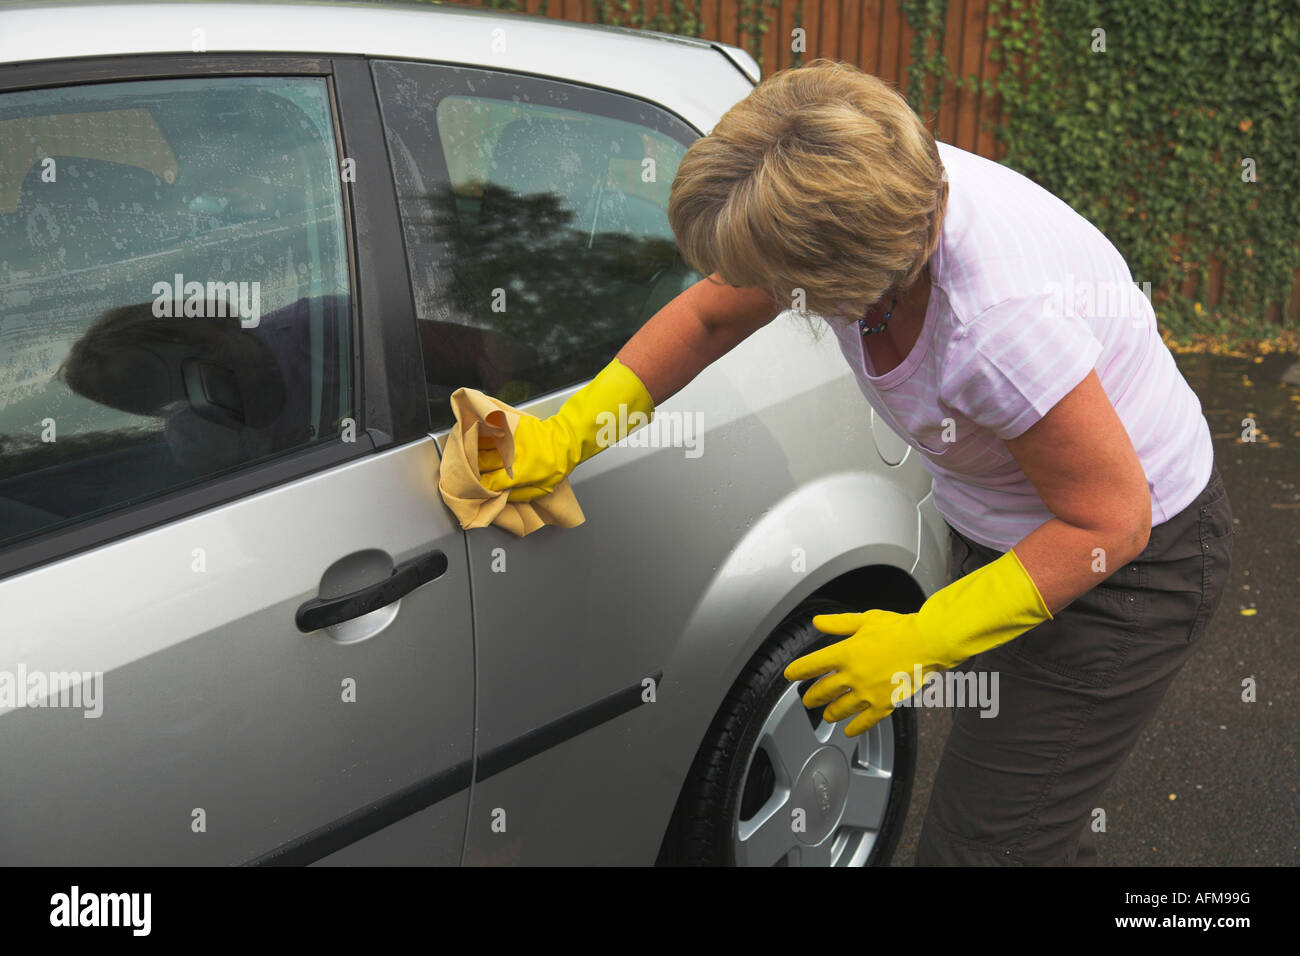 car cleaning scrub scrubbing stockfotos car cleaning scrub scrubbing bilder alamy. Black Bedroom Furniture Sets. Home Design Ideas